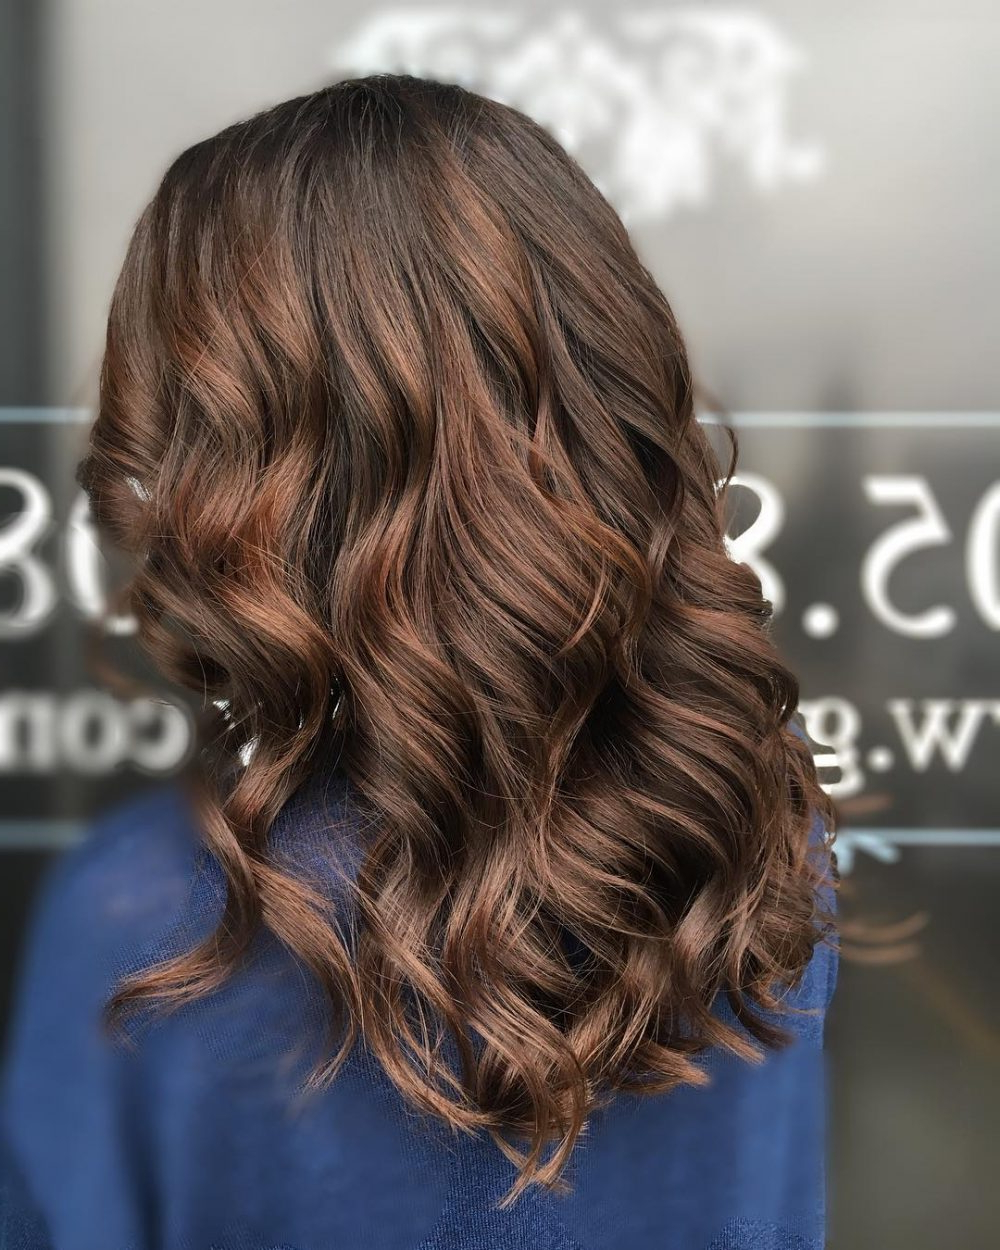 34 Sweetest Caramel Highlights On Light To Dark Brown Hair (2019) Within Most Up To Date Warm Toned Brown Hairstyles With Caramel Balayage (Gallery 12 of 20)